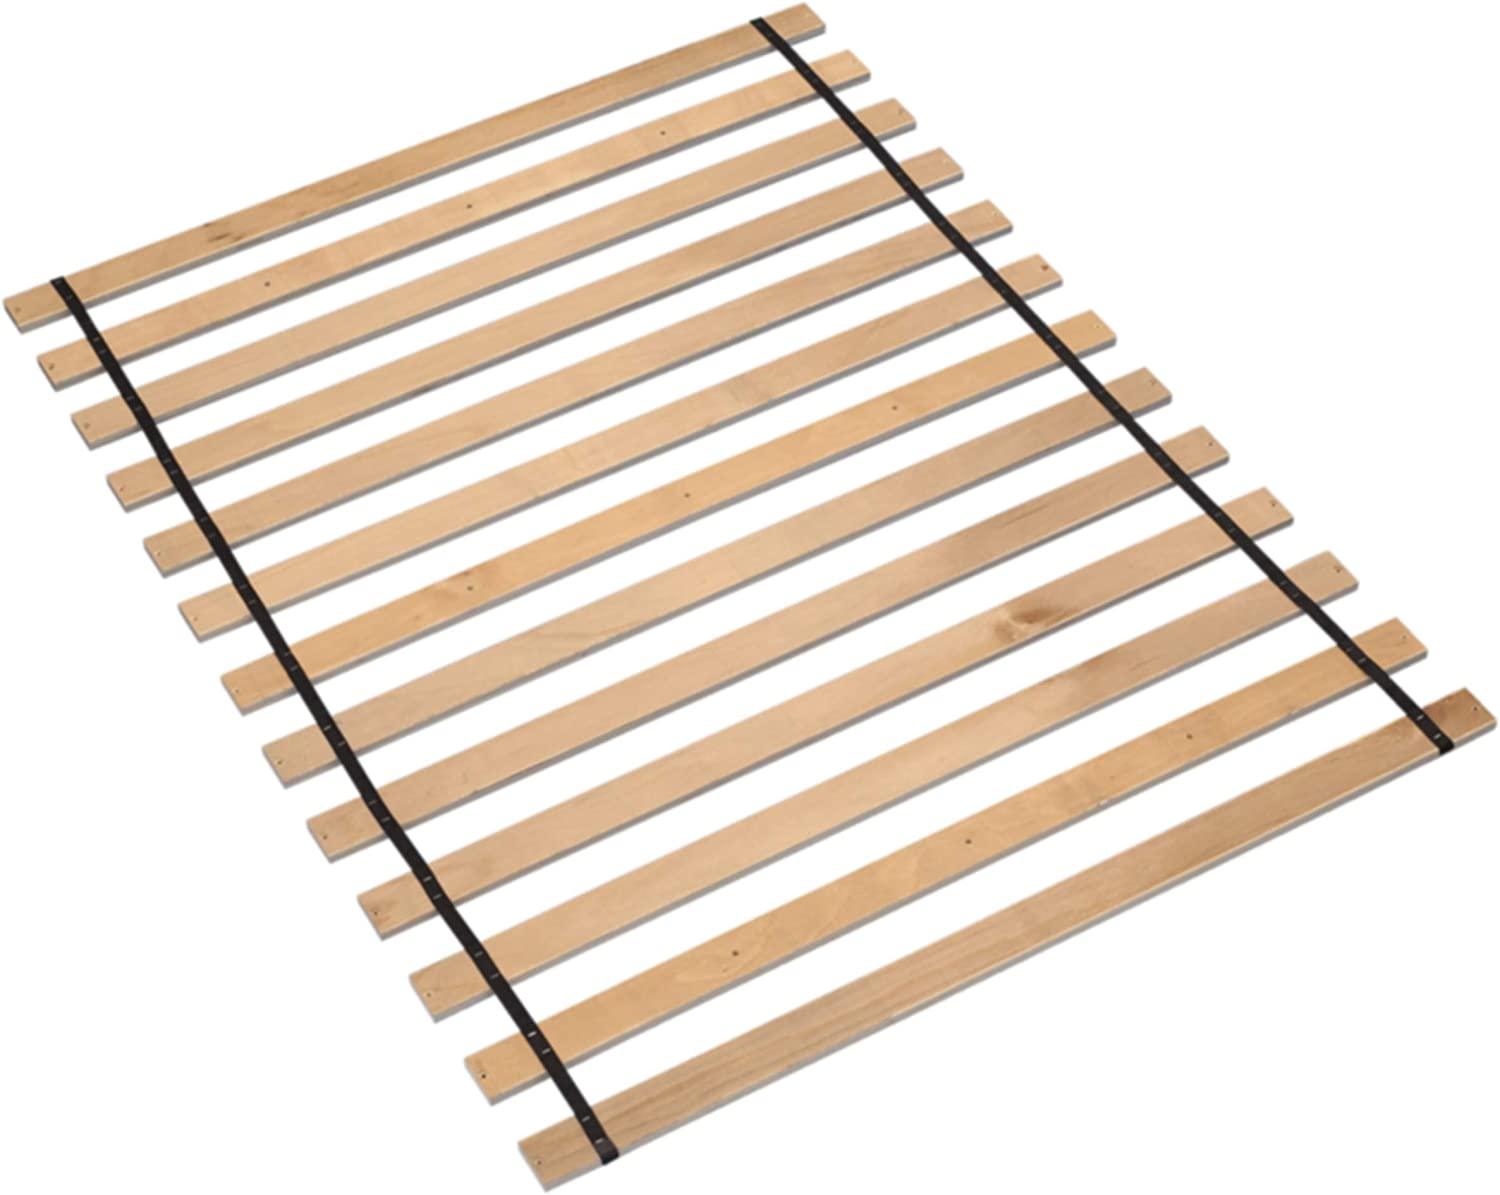 Ashley Furniture Signature Design - Frames and Rails Roll Slats - King Size - Component Piece - Contemporary Living - Brown